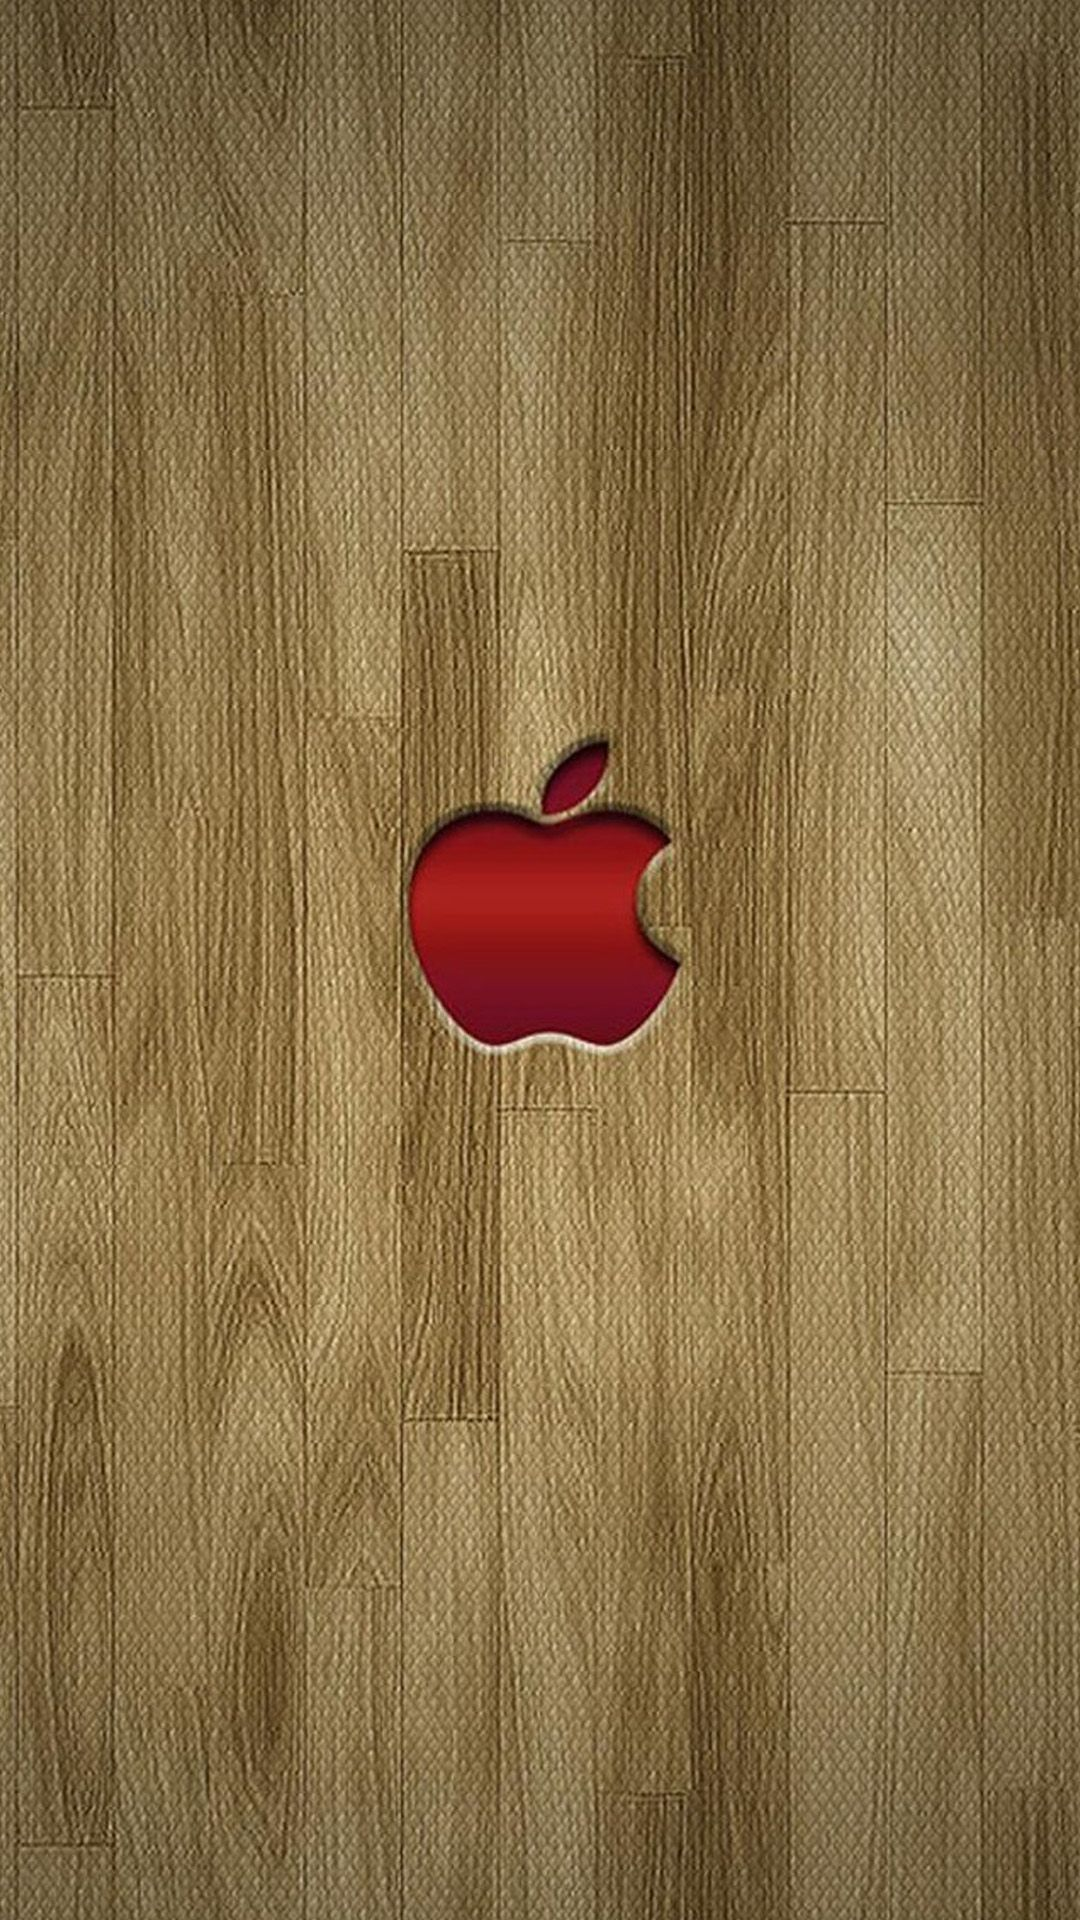 Apple logo & wood texture Apple wallpaper iphone, Apple